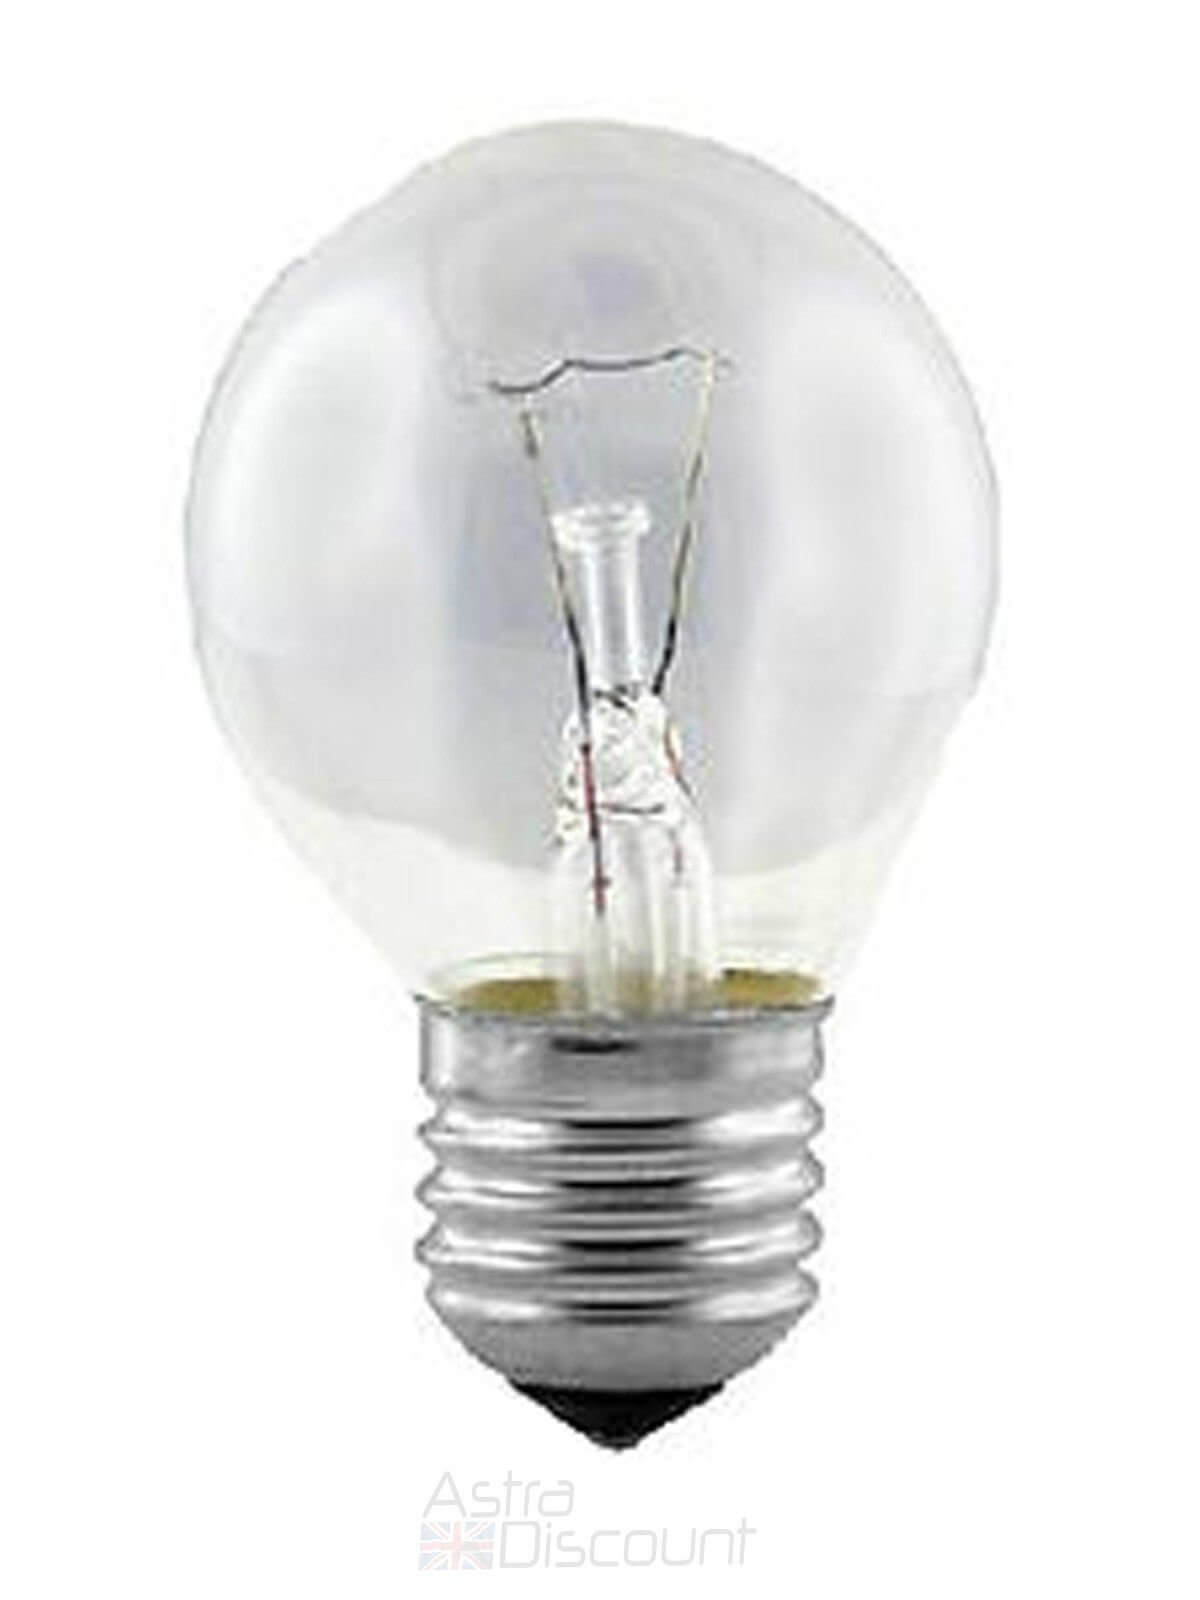 25W E27 Screw Festoon Lamp Bulb Halogen Filament